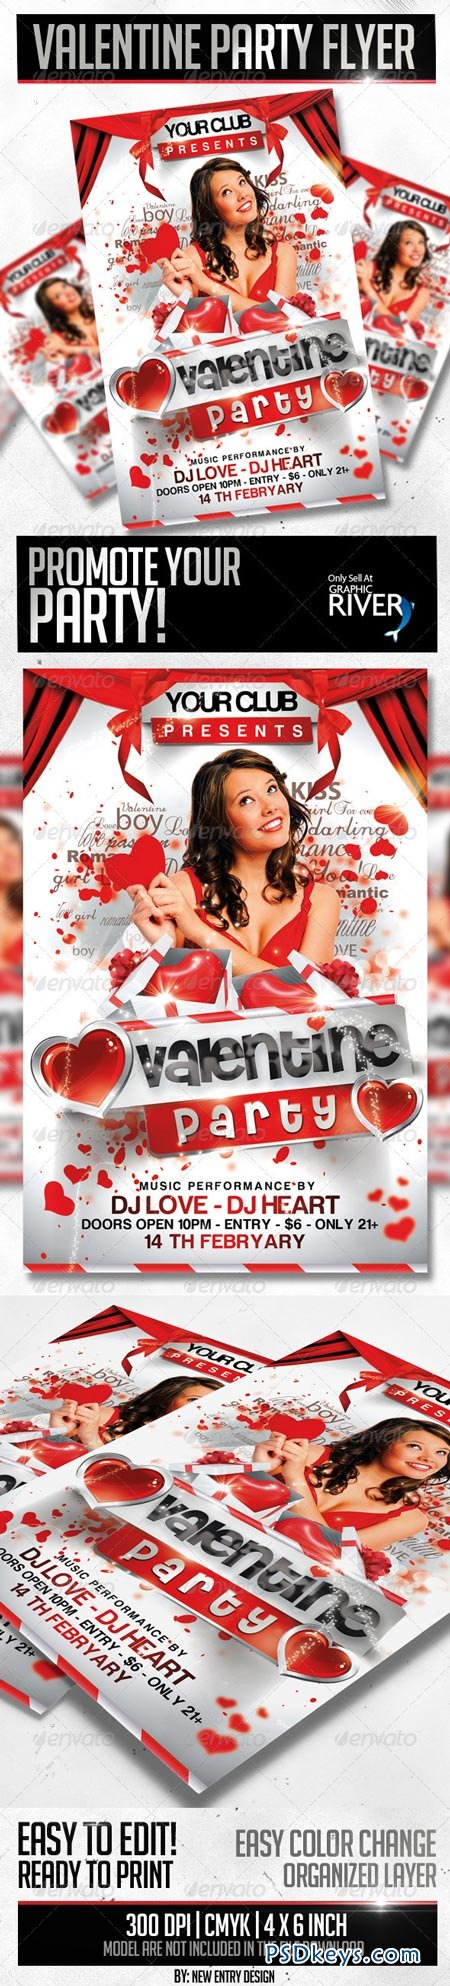 Valentine Party Flyer Template 3792006